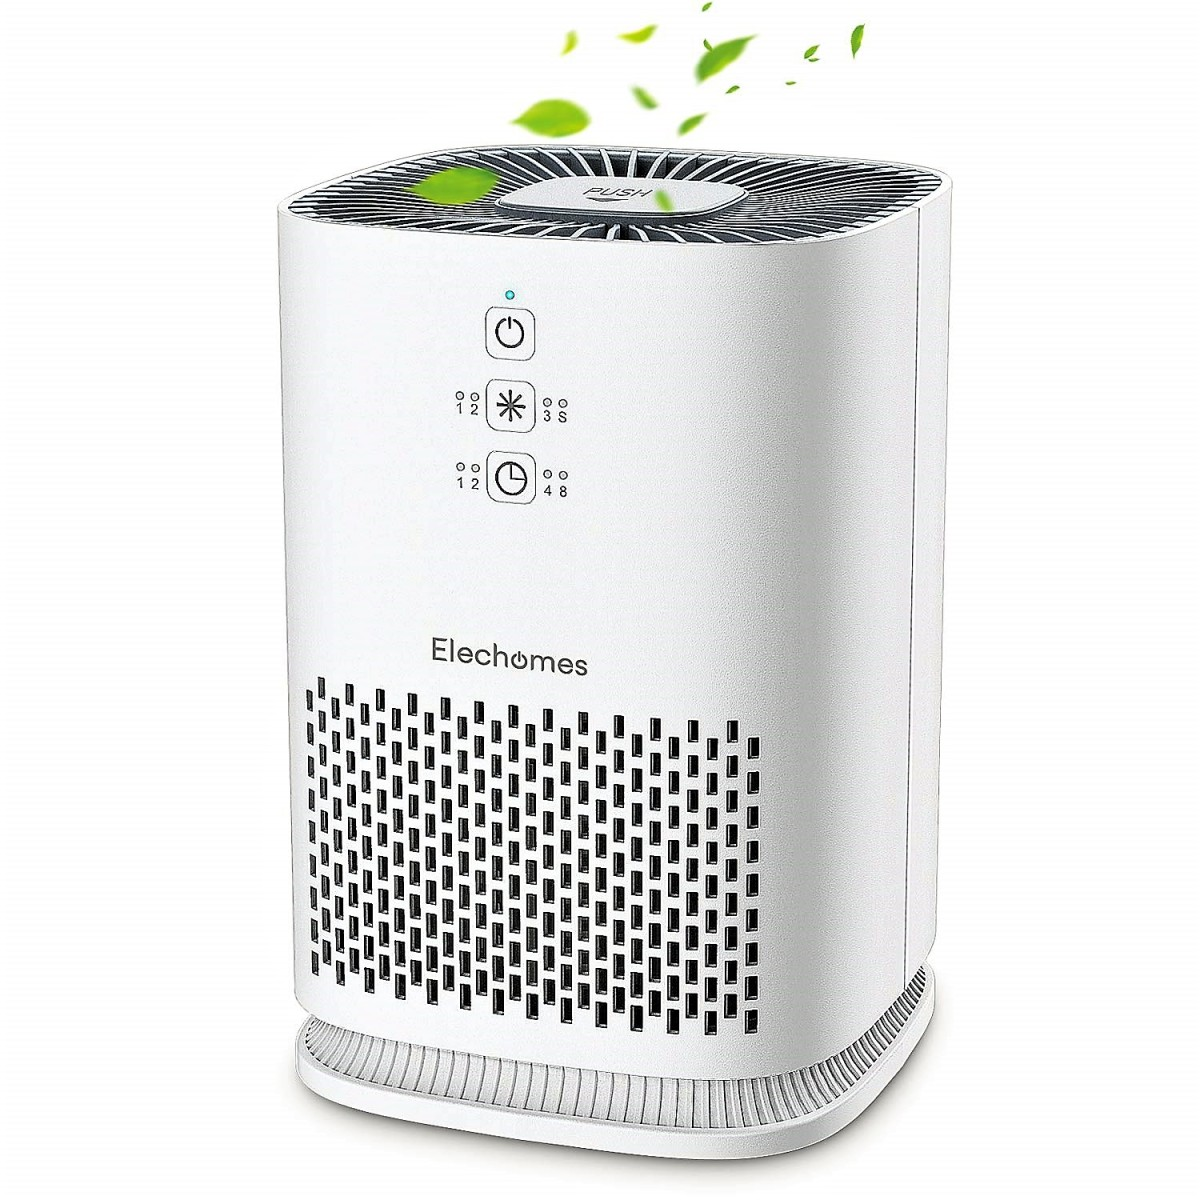 Elechomes Air Purifier Review: The Best Bedroom Filtration System